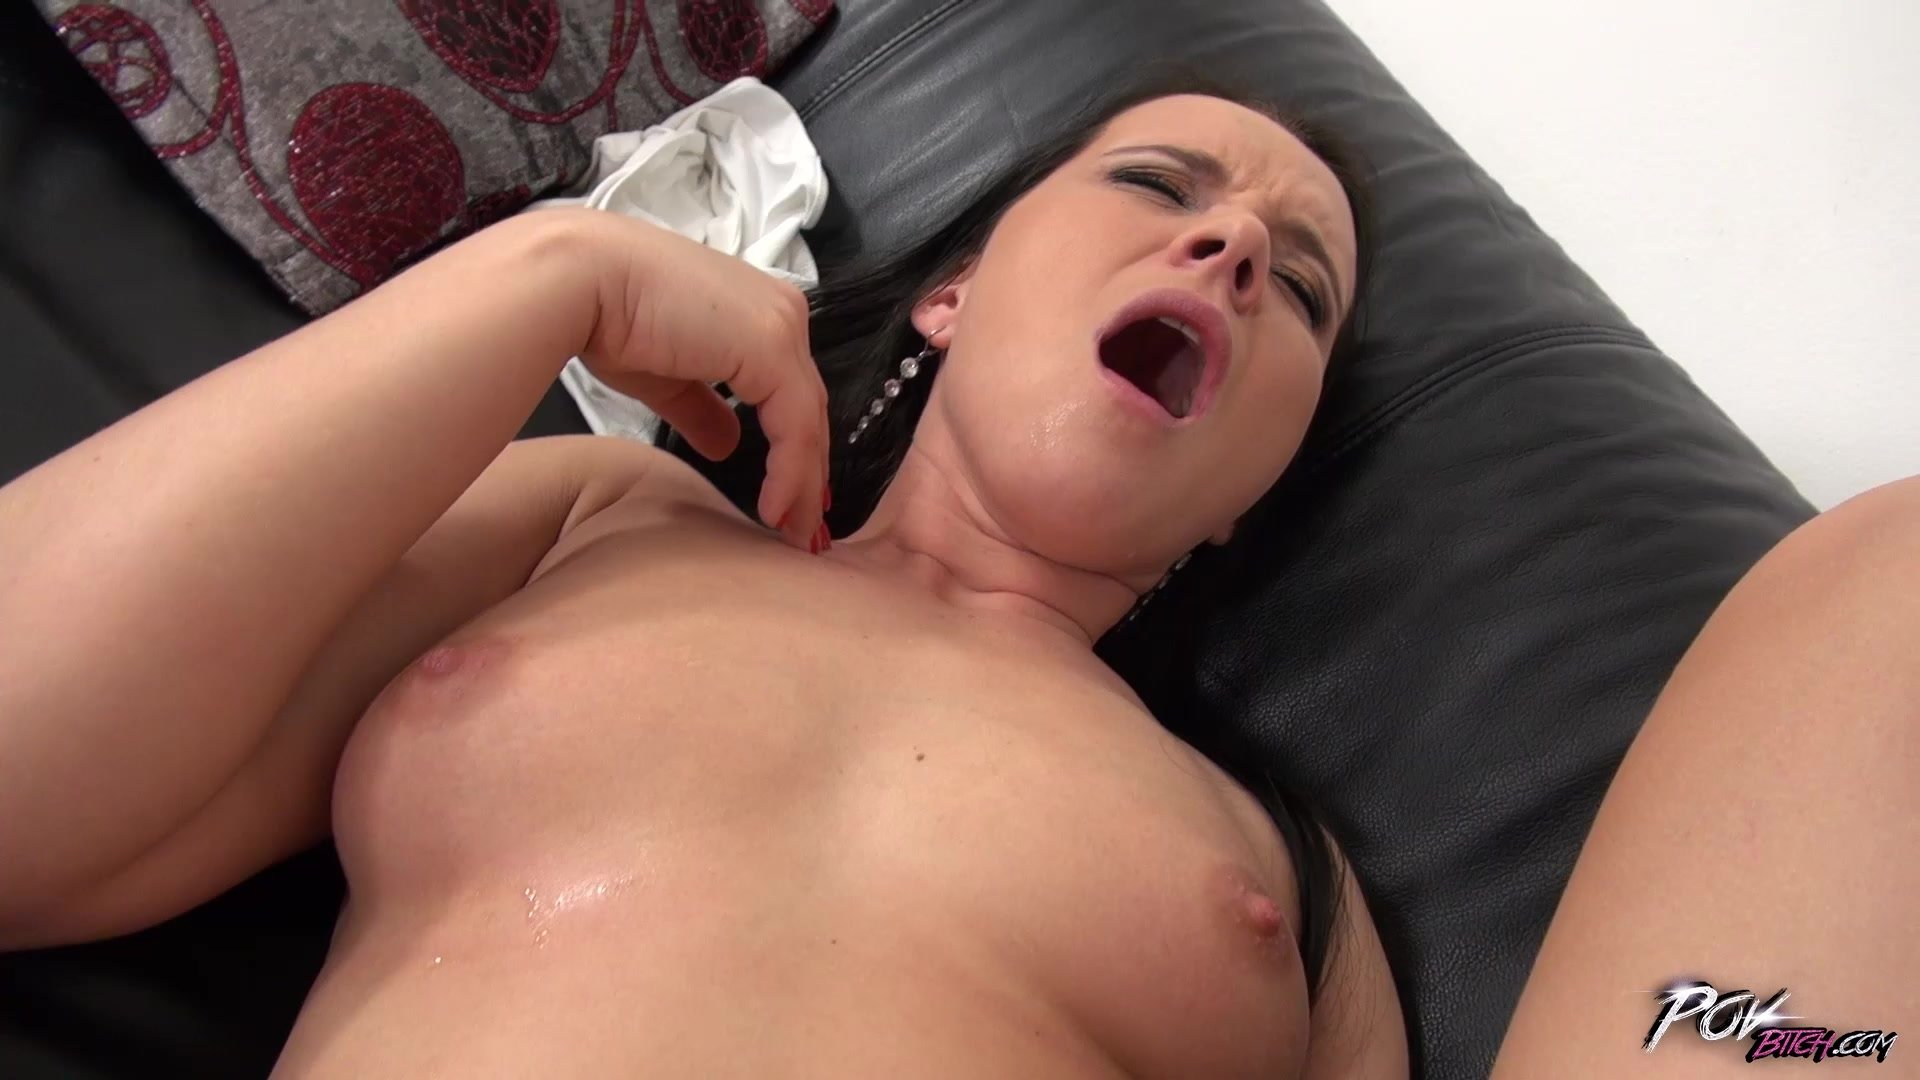 Father and family mom see Incest family threesome5